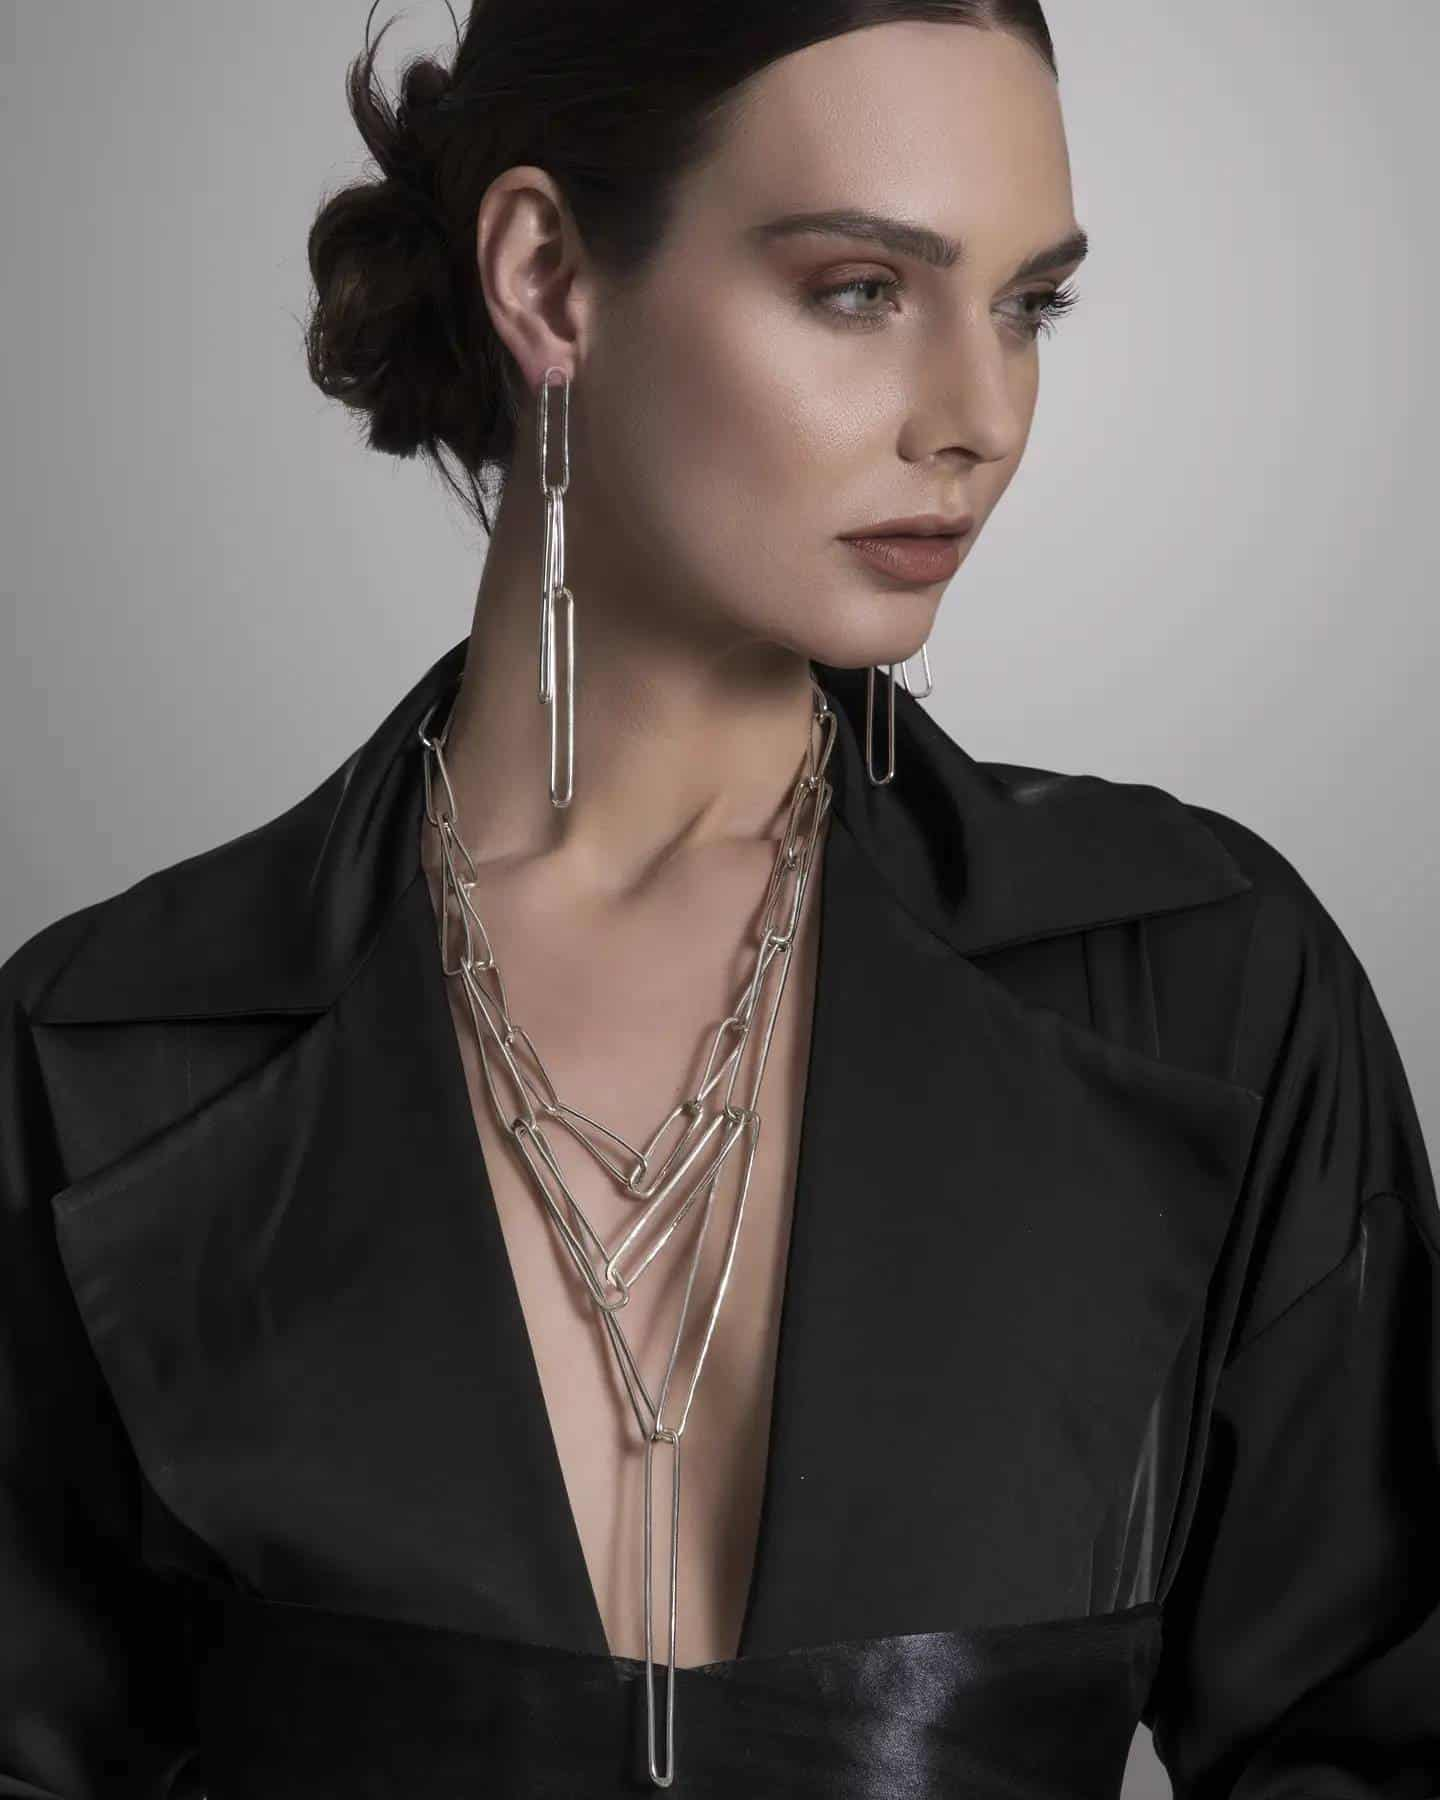 HOMI Fashion&Jewels Exhibition: Fashion accessories and jewellery to boost Italian exports